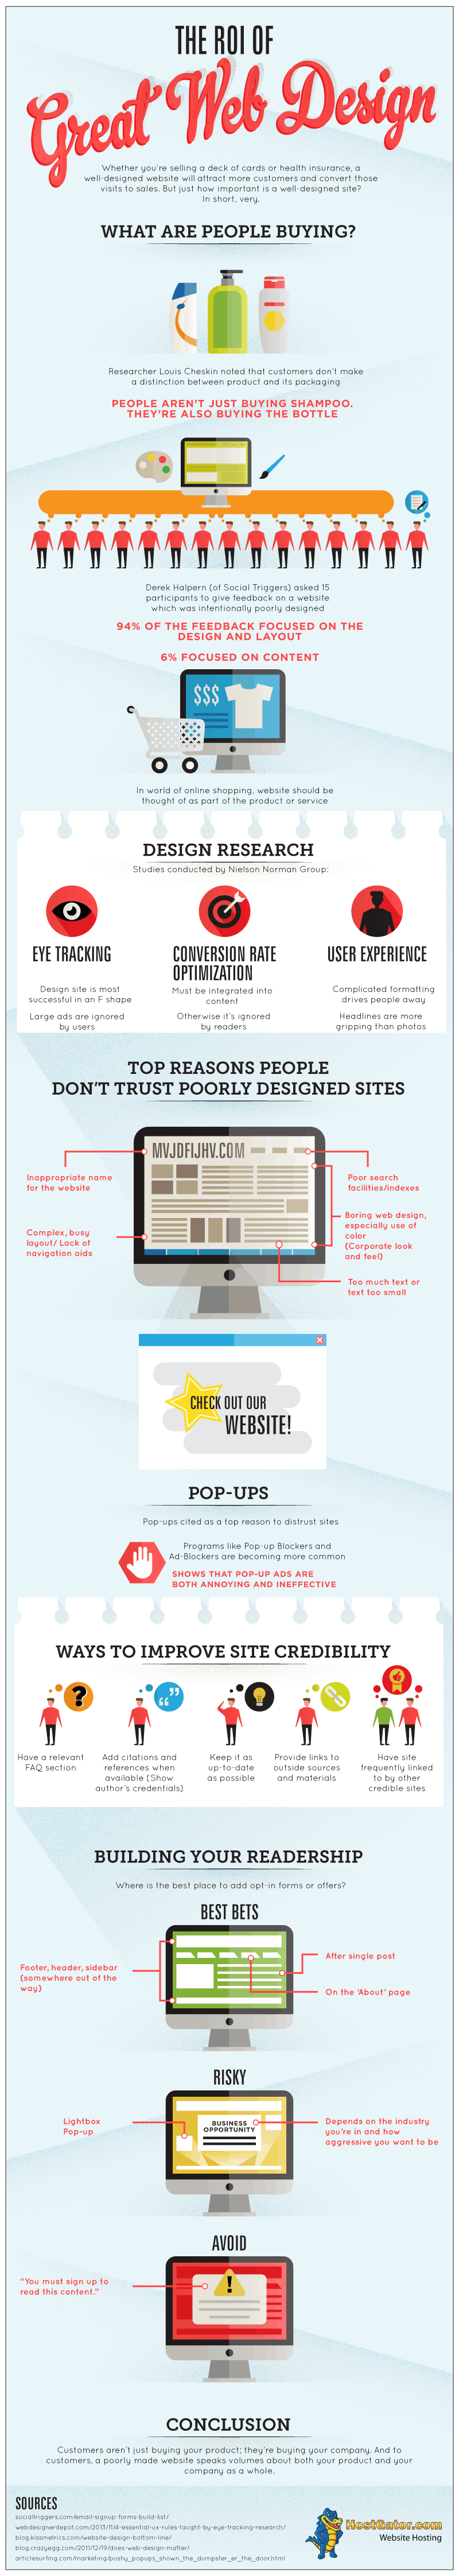 the-roi-of-great-web-design-infographic